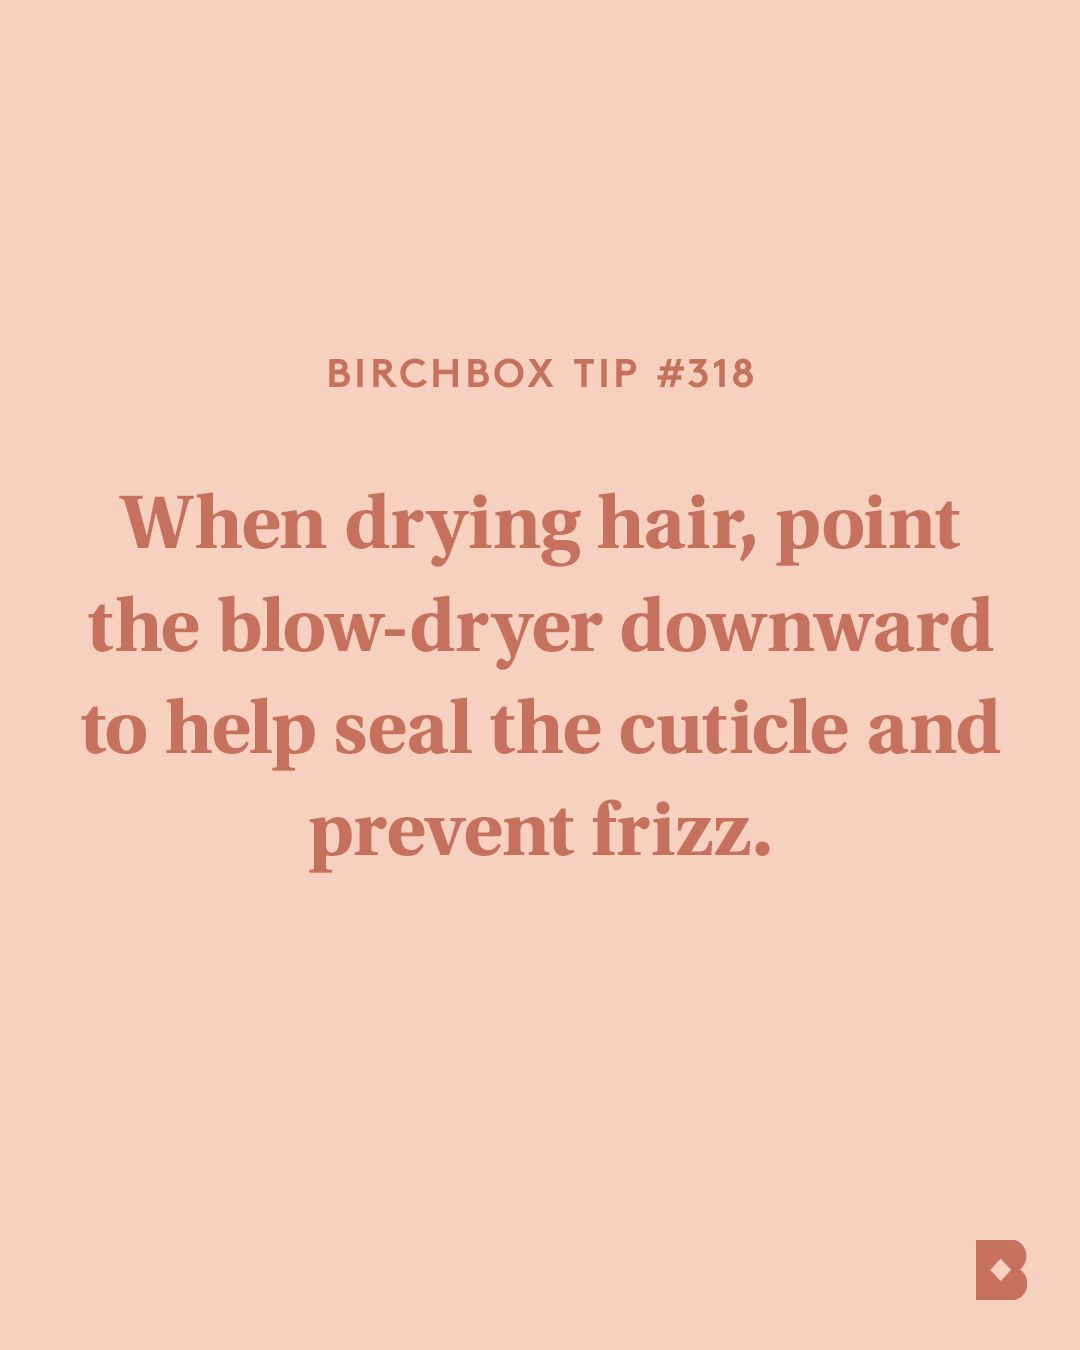 Think of blow-drying like going with the grain; when your hair cuticles lie flat against the hair strand you get a smoother, shinier finish.